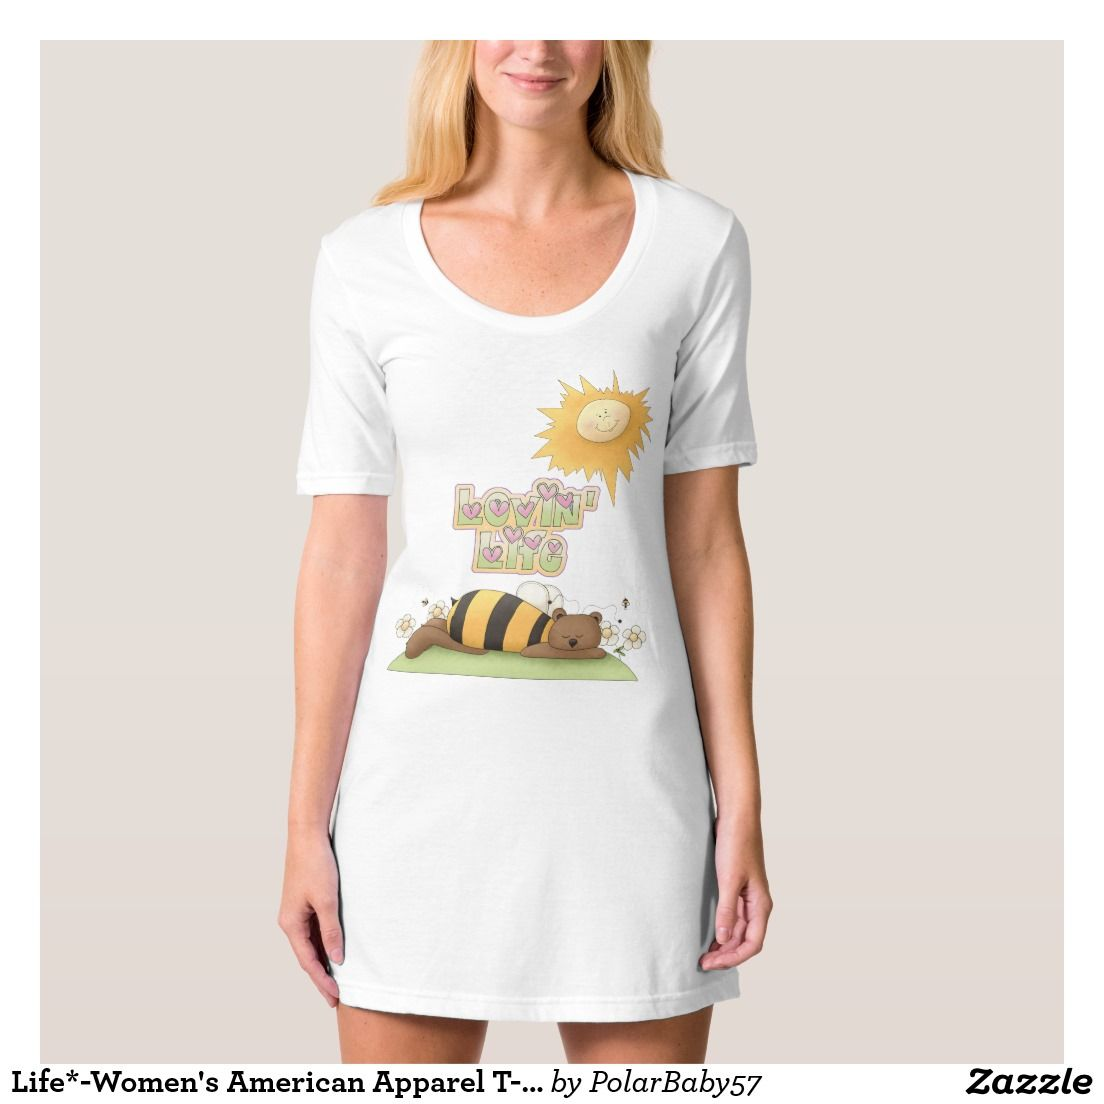 Lifewomenus american apparel tshirt dress carolus misc products